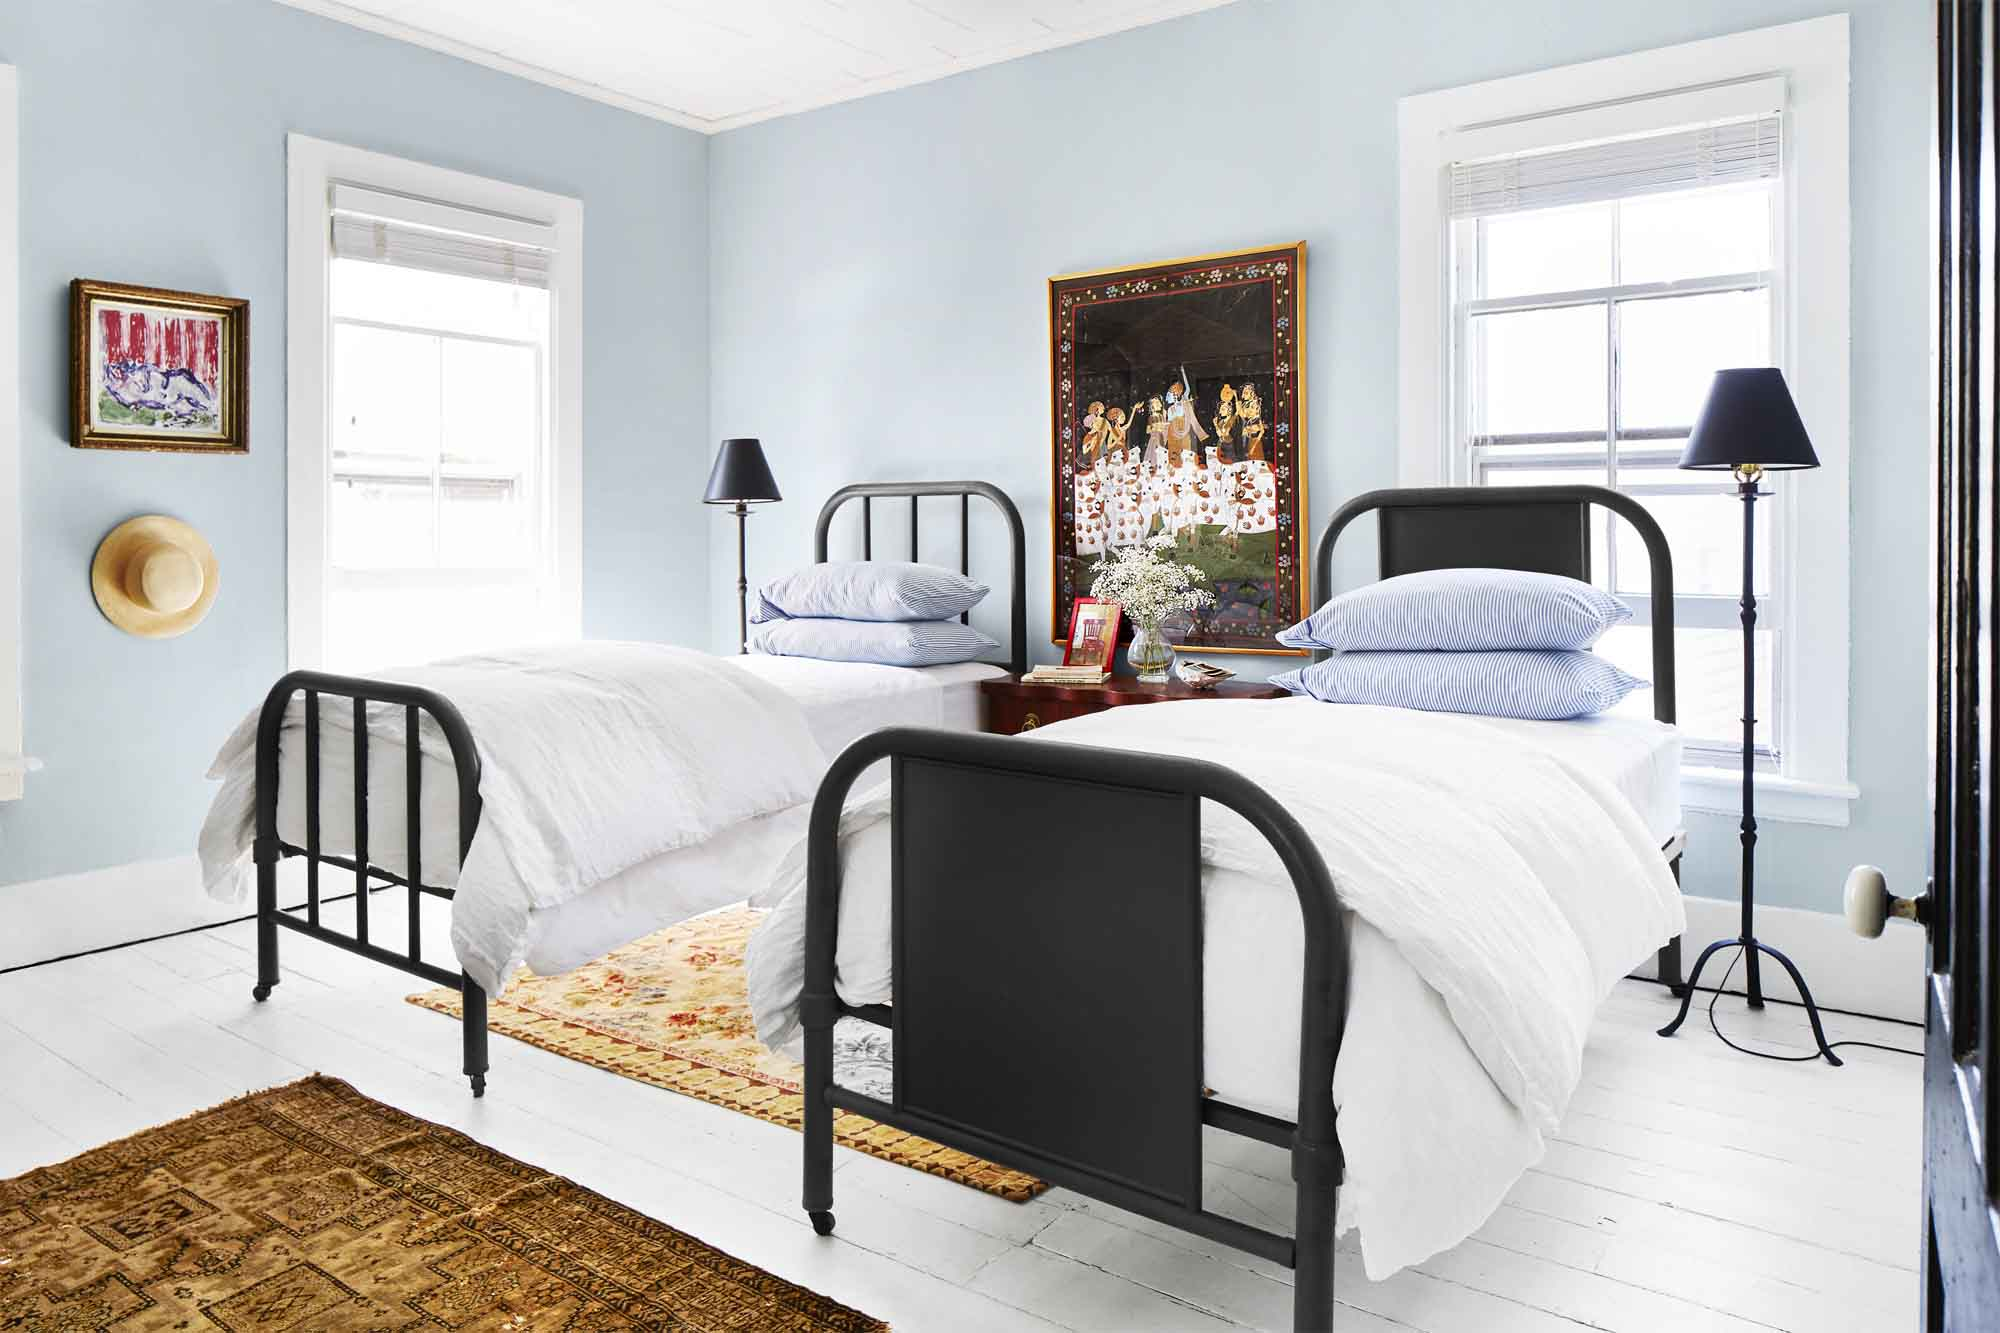 39 Guest Bedroom Decor Ideas for Guest Rooms